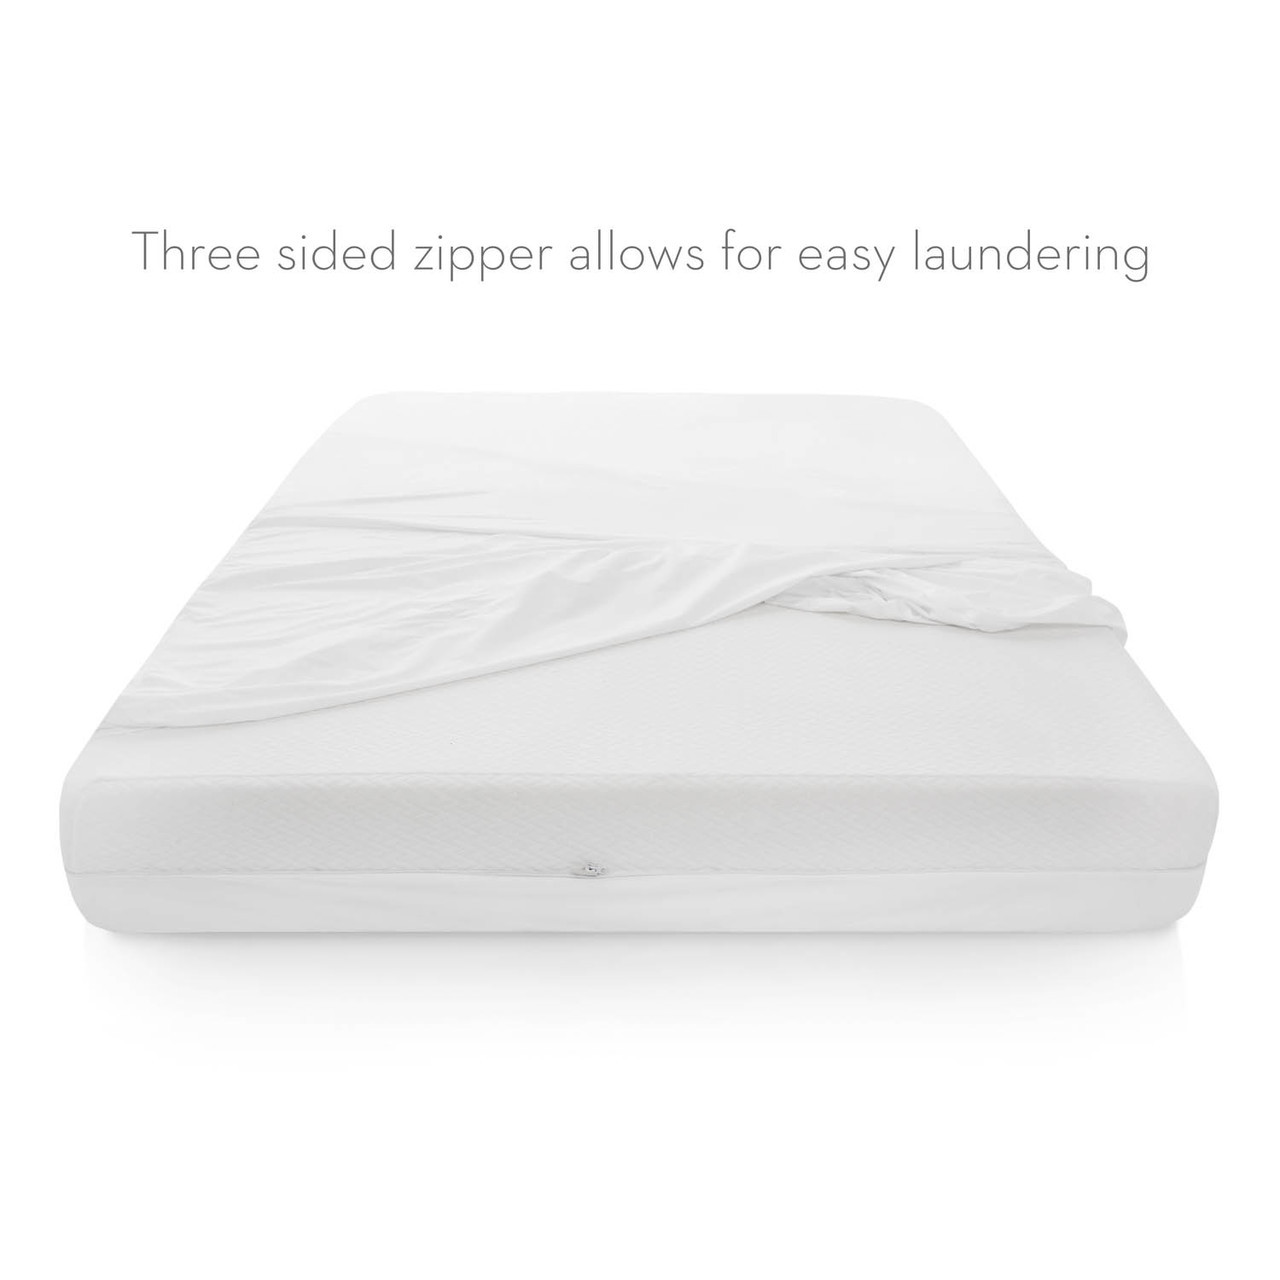 Malouf Sleep Tite Mattress Protector Malouf Sleep Tite Encase Lt Mattress Protector